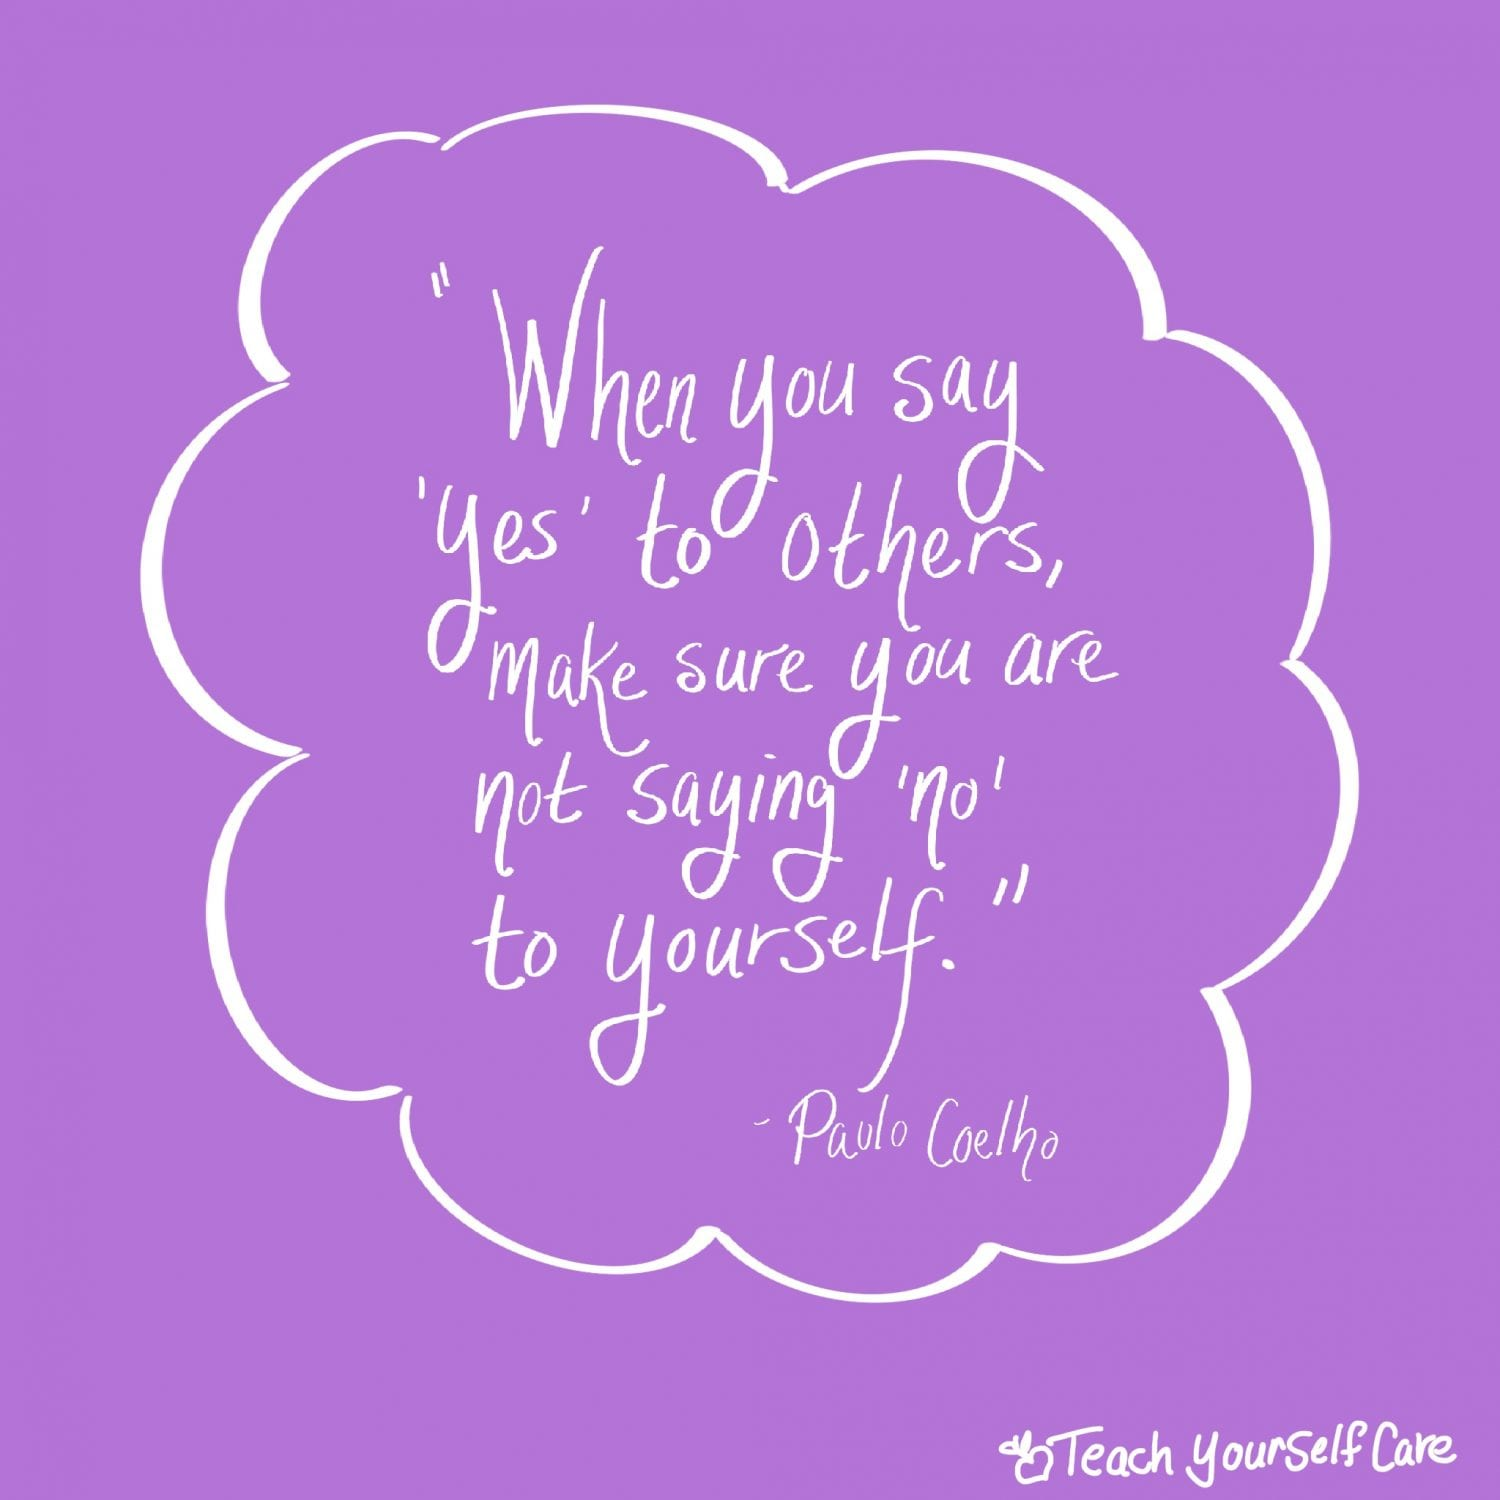 When you say yes to others make sure you are not saying no to yourself.